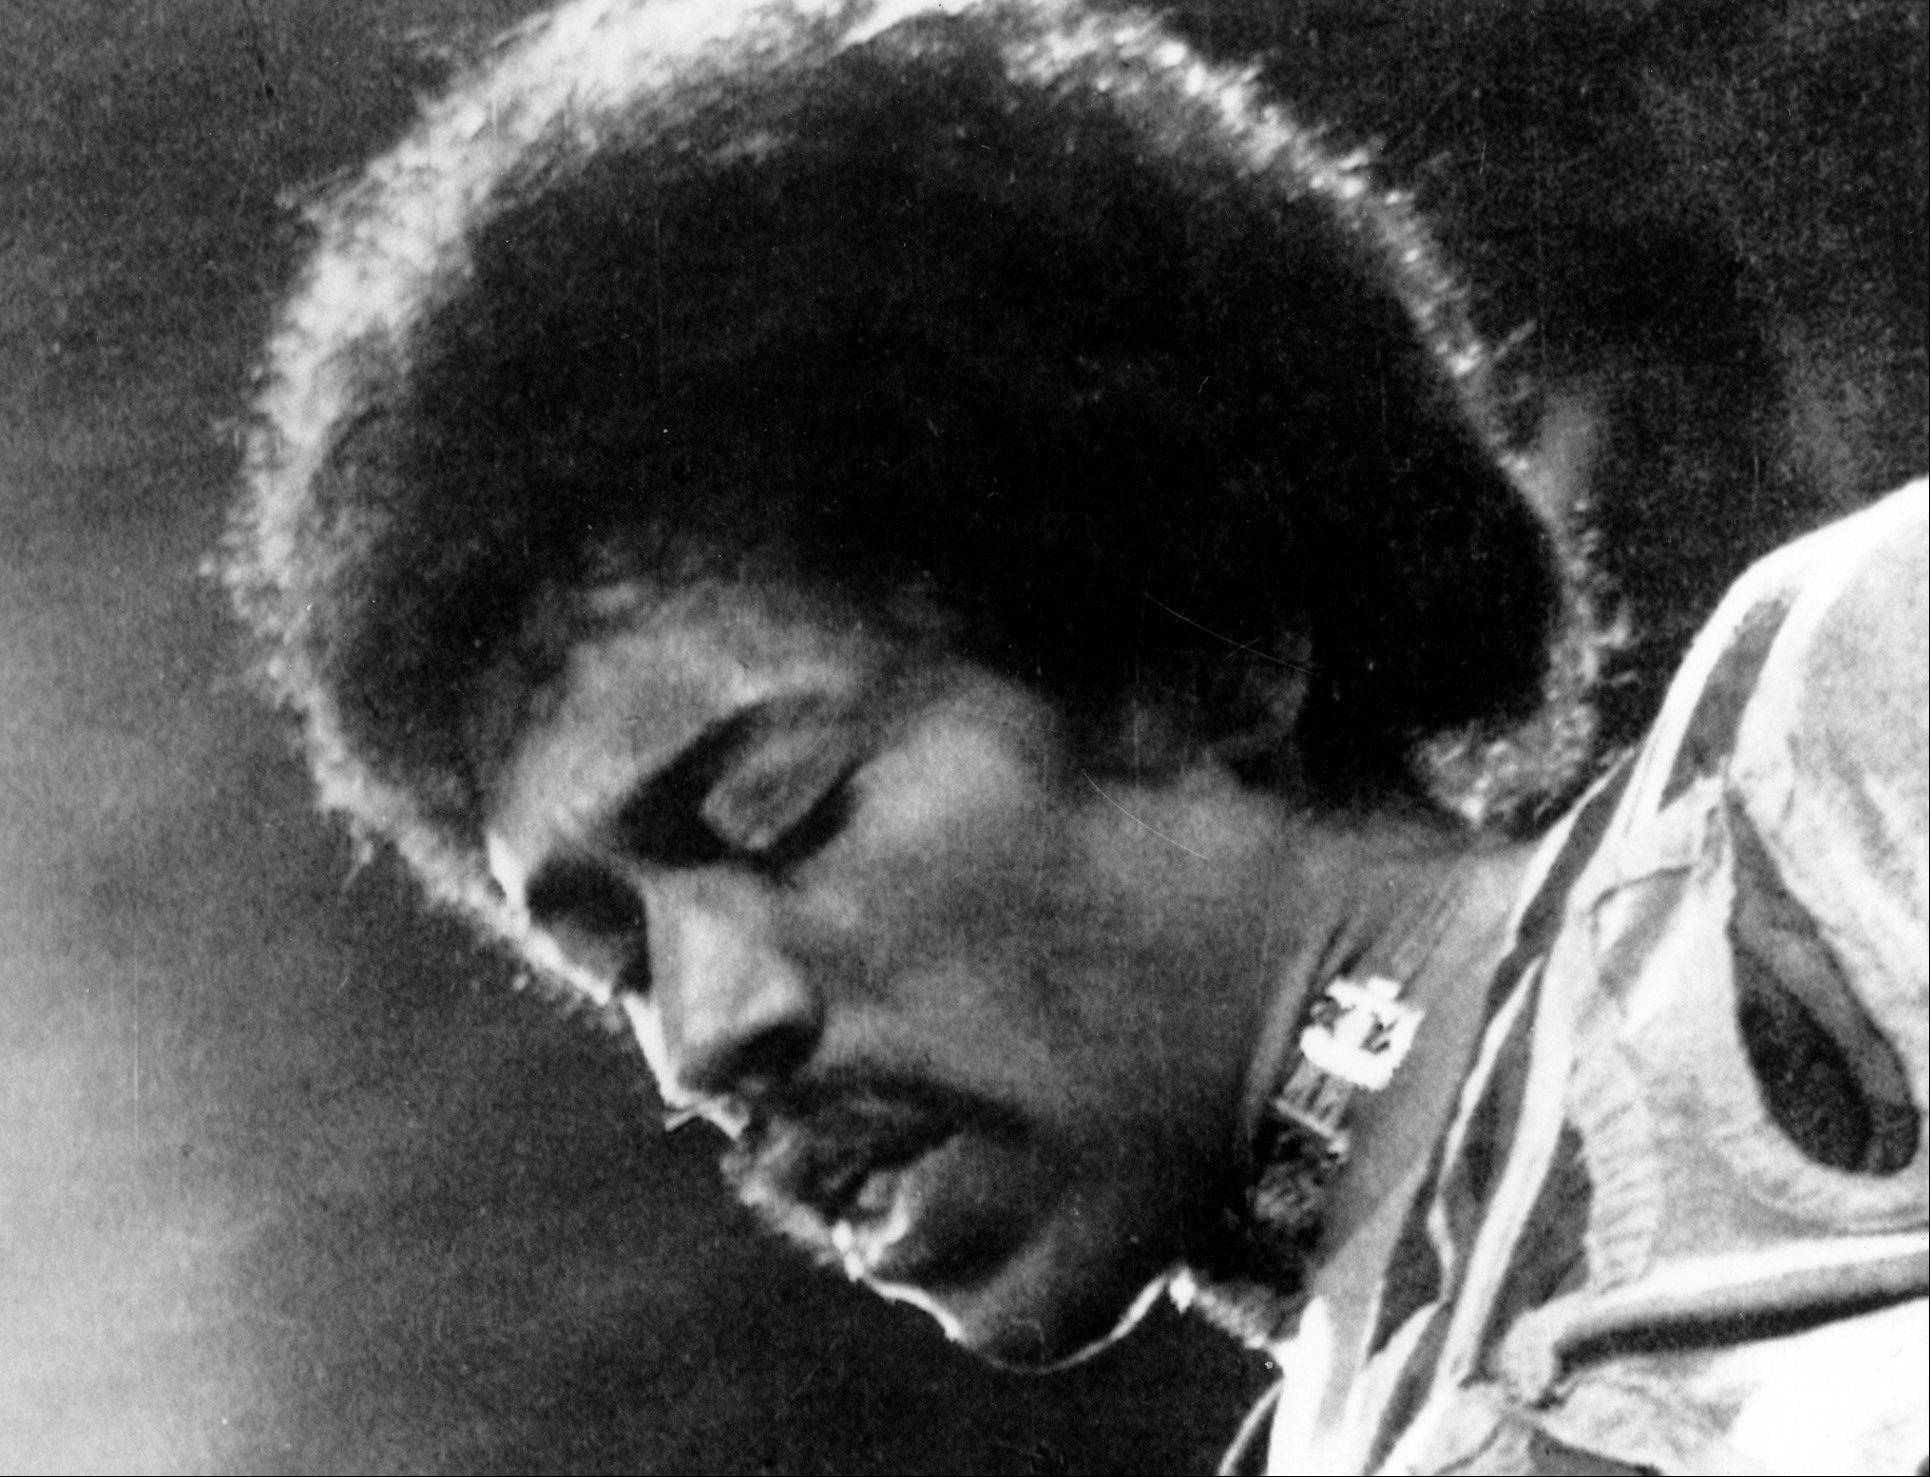 A new study finds that an early death is twice as likely for solo musicians like Jimi Hendrix than for members of bands.